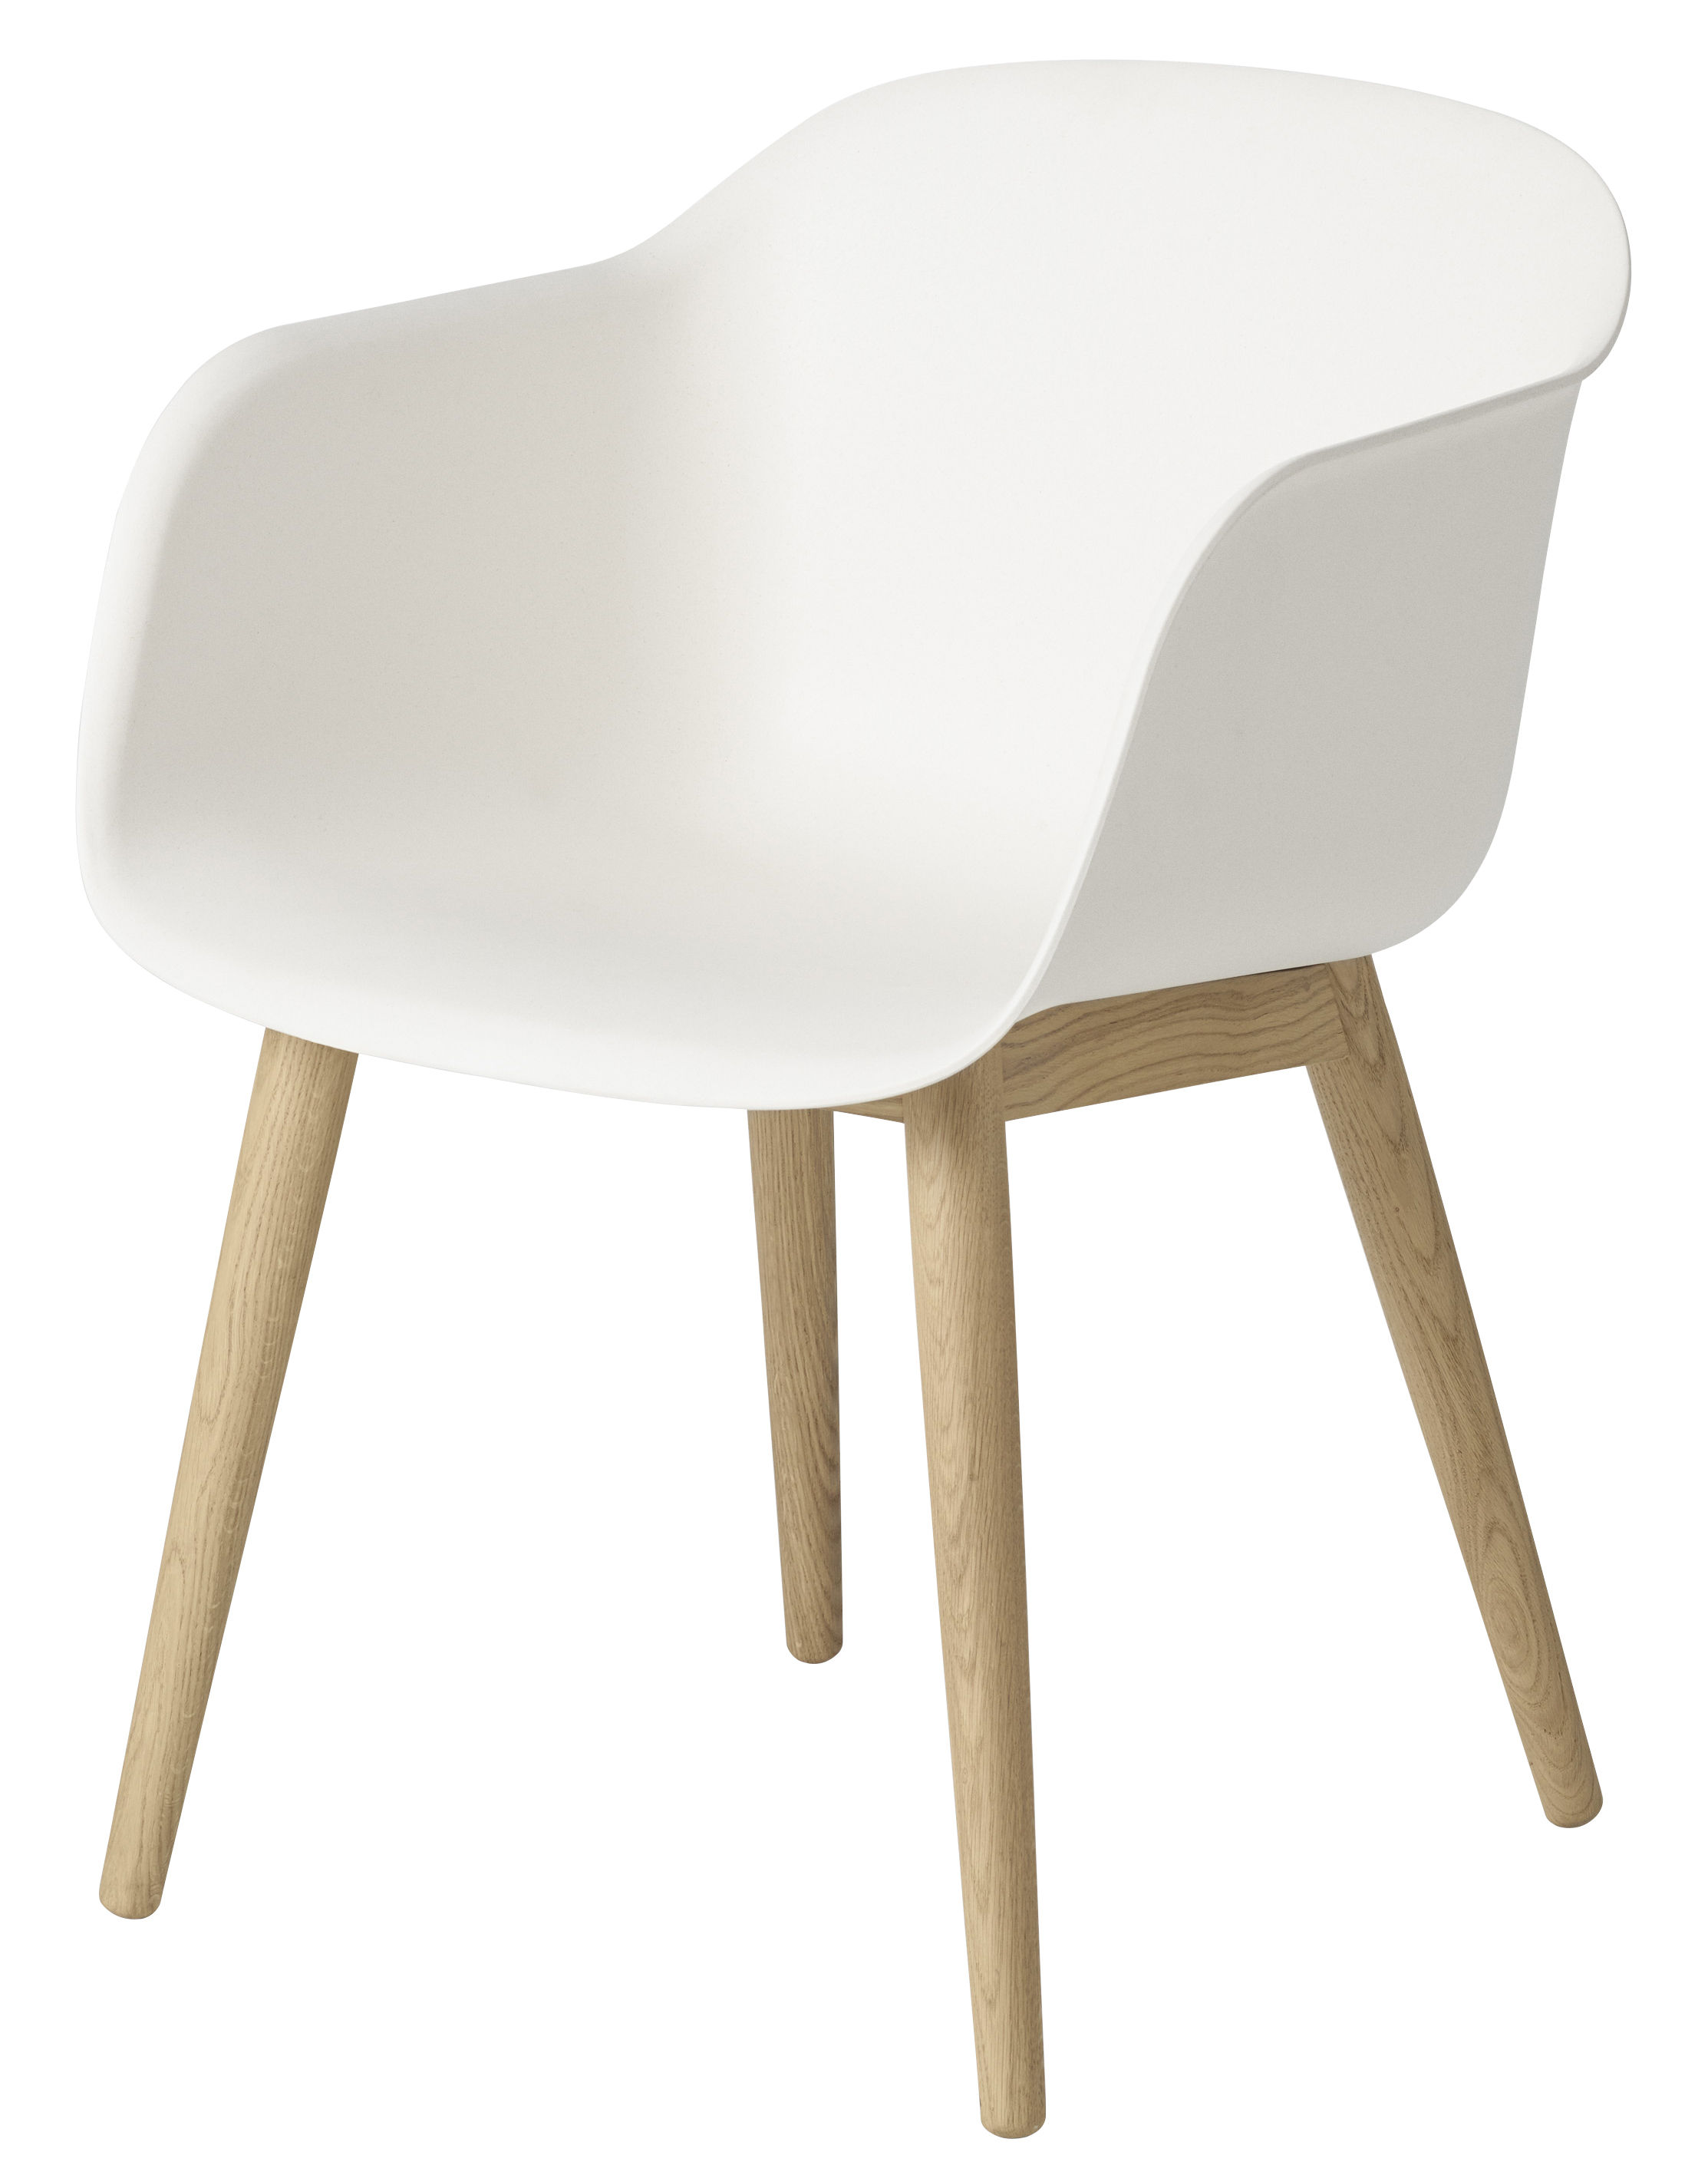 fauteuil fiber pieds bois blanc pieds bois naturel muuto. Black Bedroom Furniture Sets. Home Design Ideas